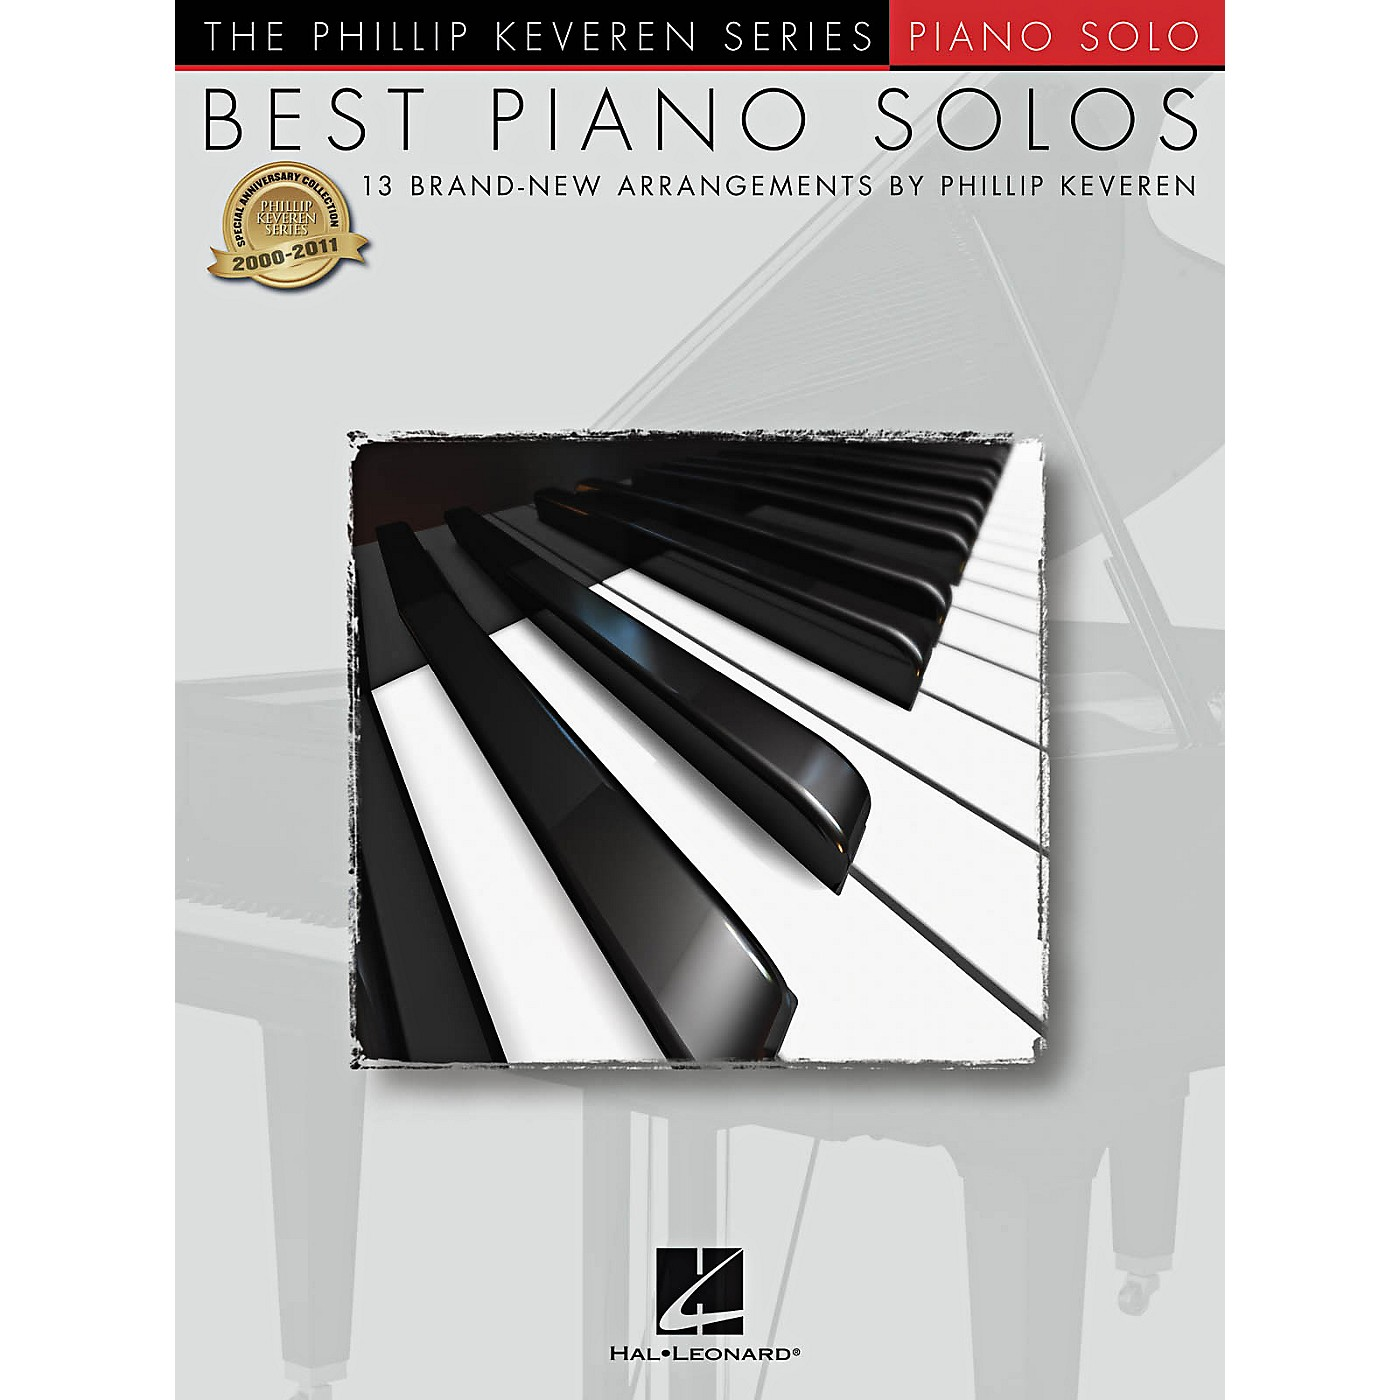 Hal Leonard Best Piano Solos - Phillip Keveren Series - Special Anniversary Collection thumbnail